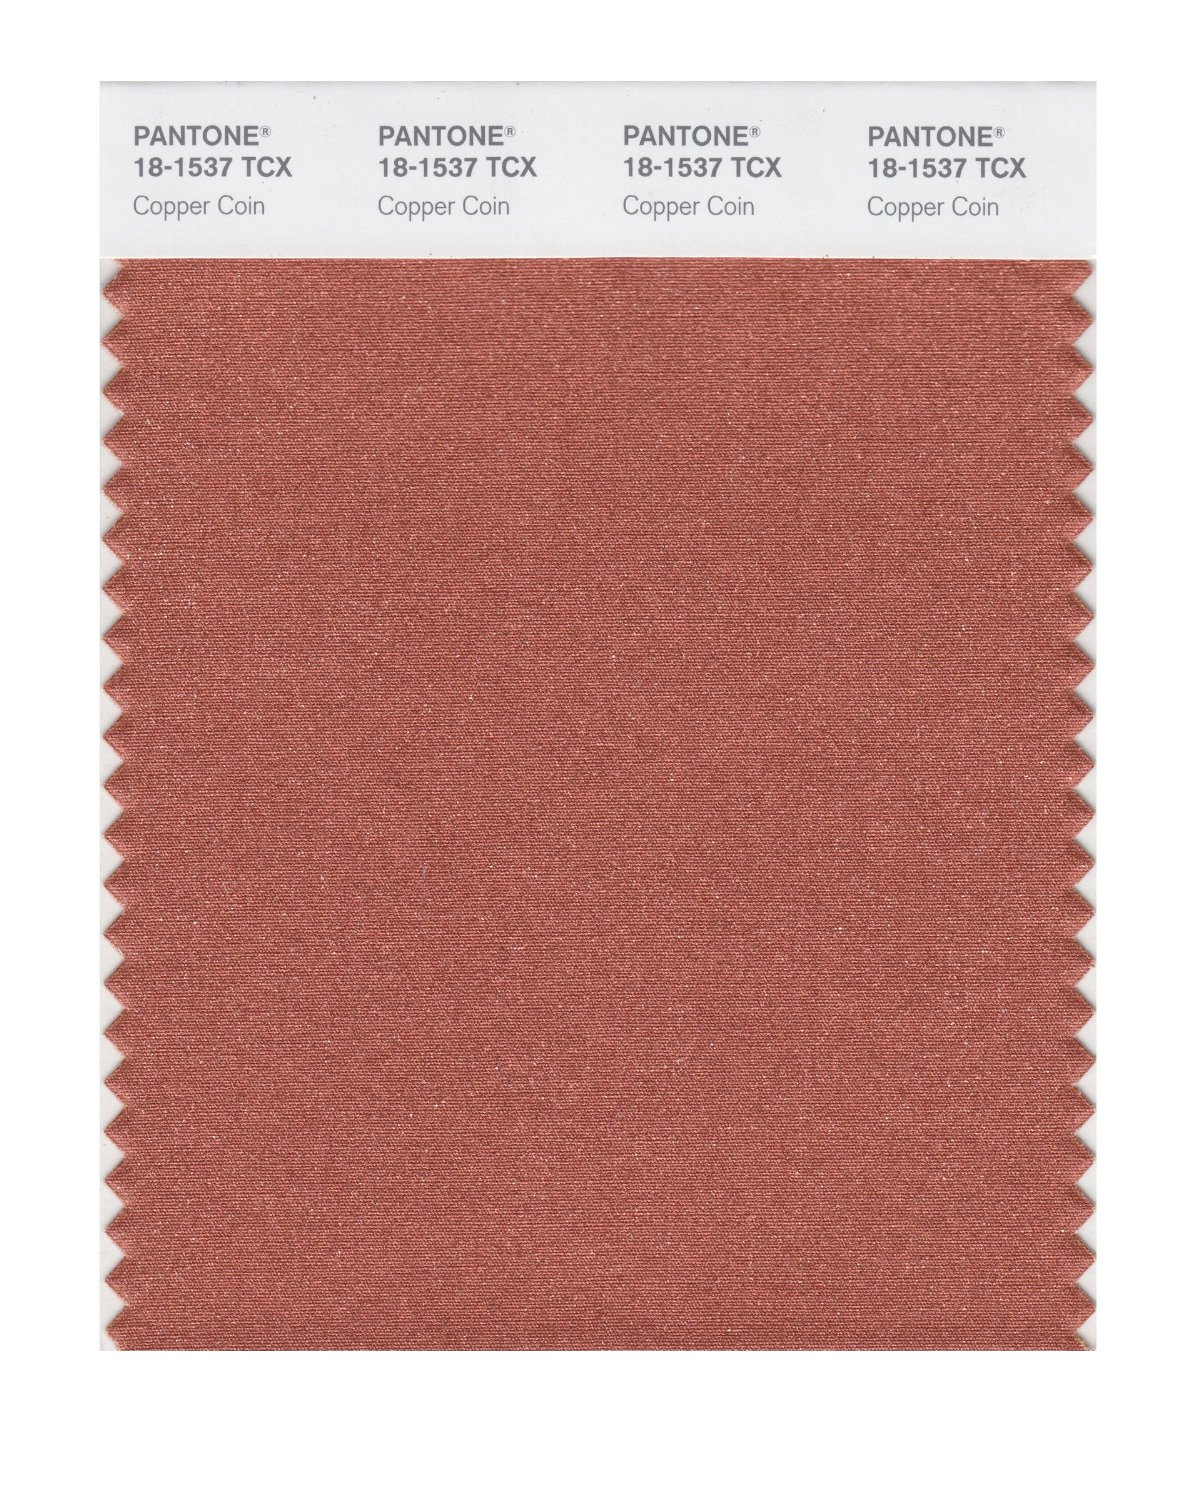 Pantone Smart Swatch 18-1537 Copper Coin